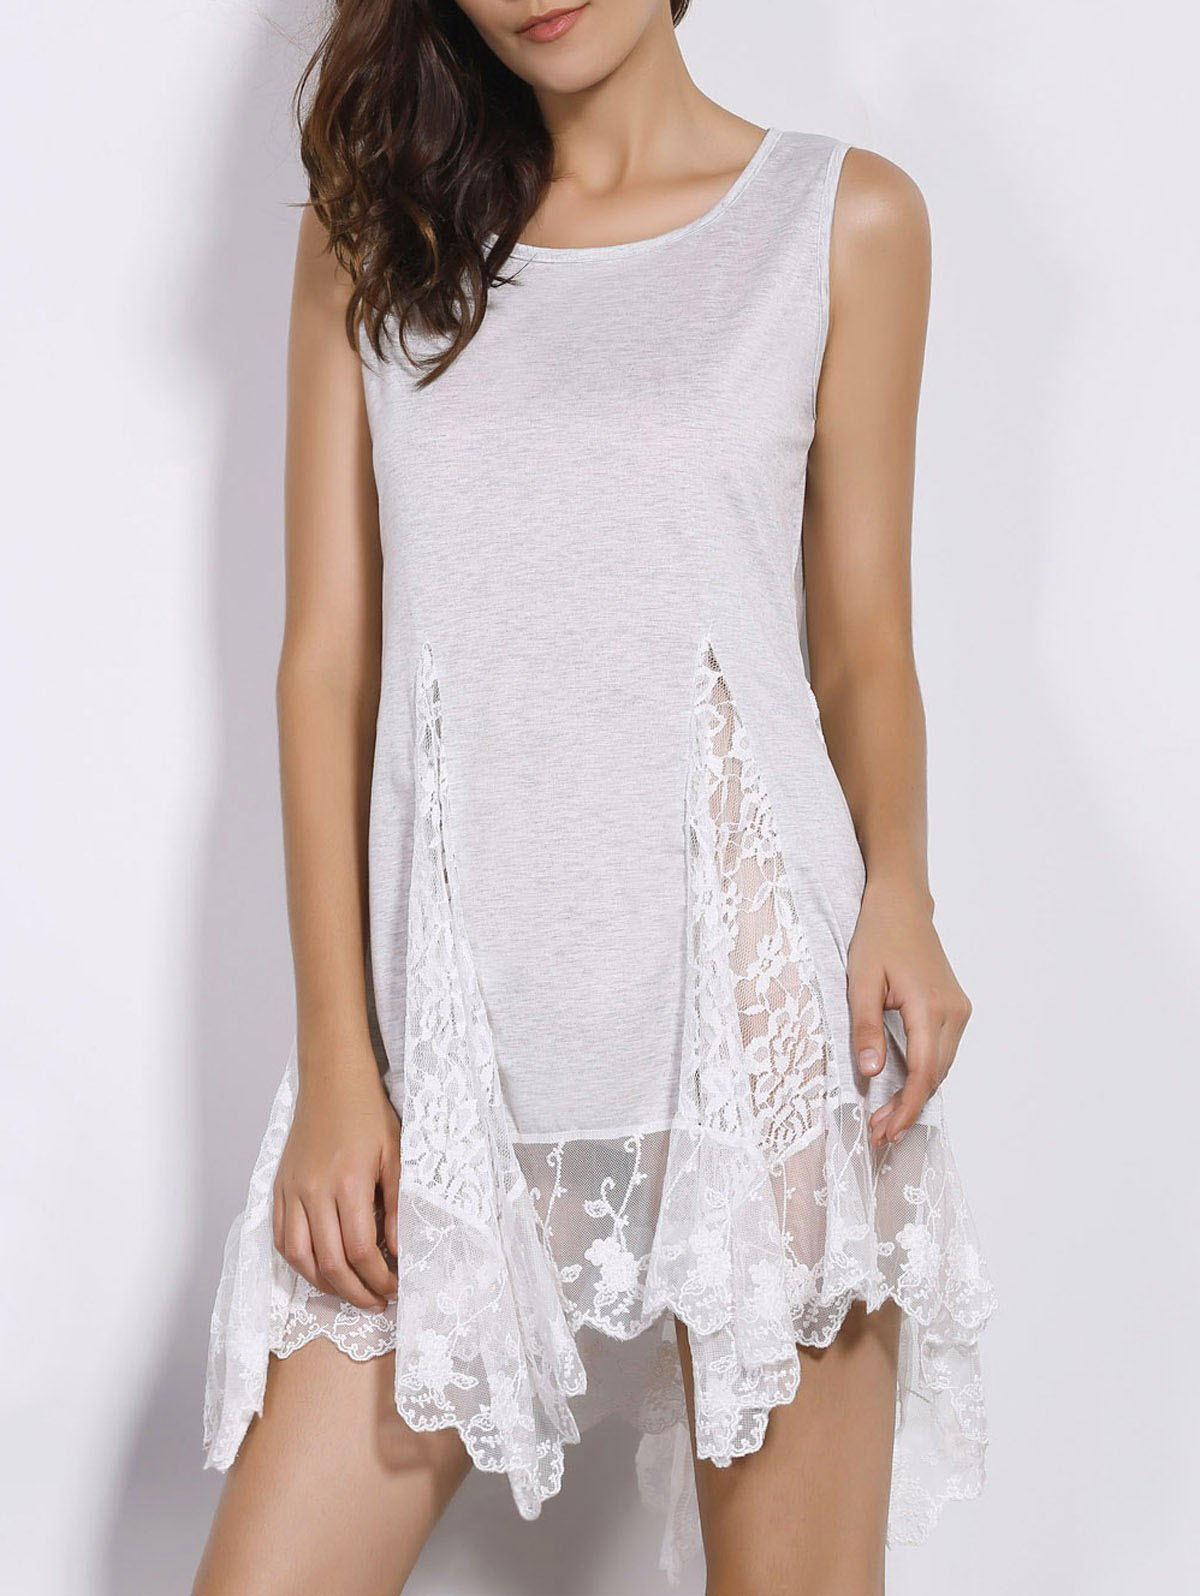 Sweet Women's Scoop Neck White Lace Spliced Dress - WHITE S